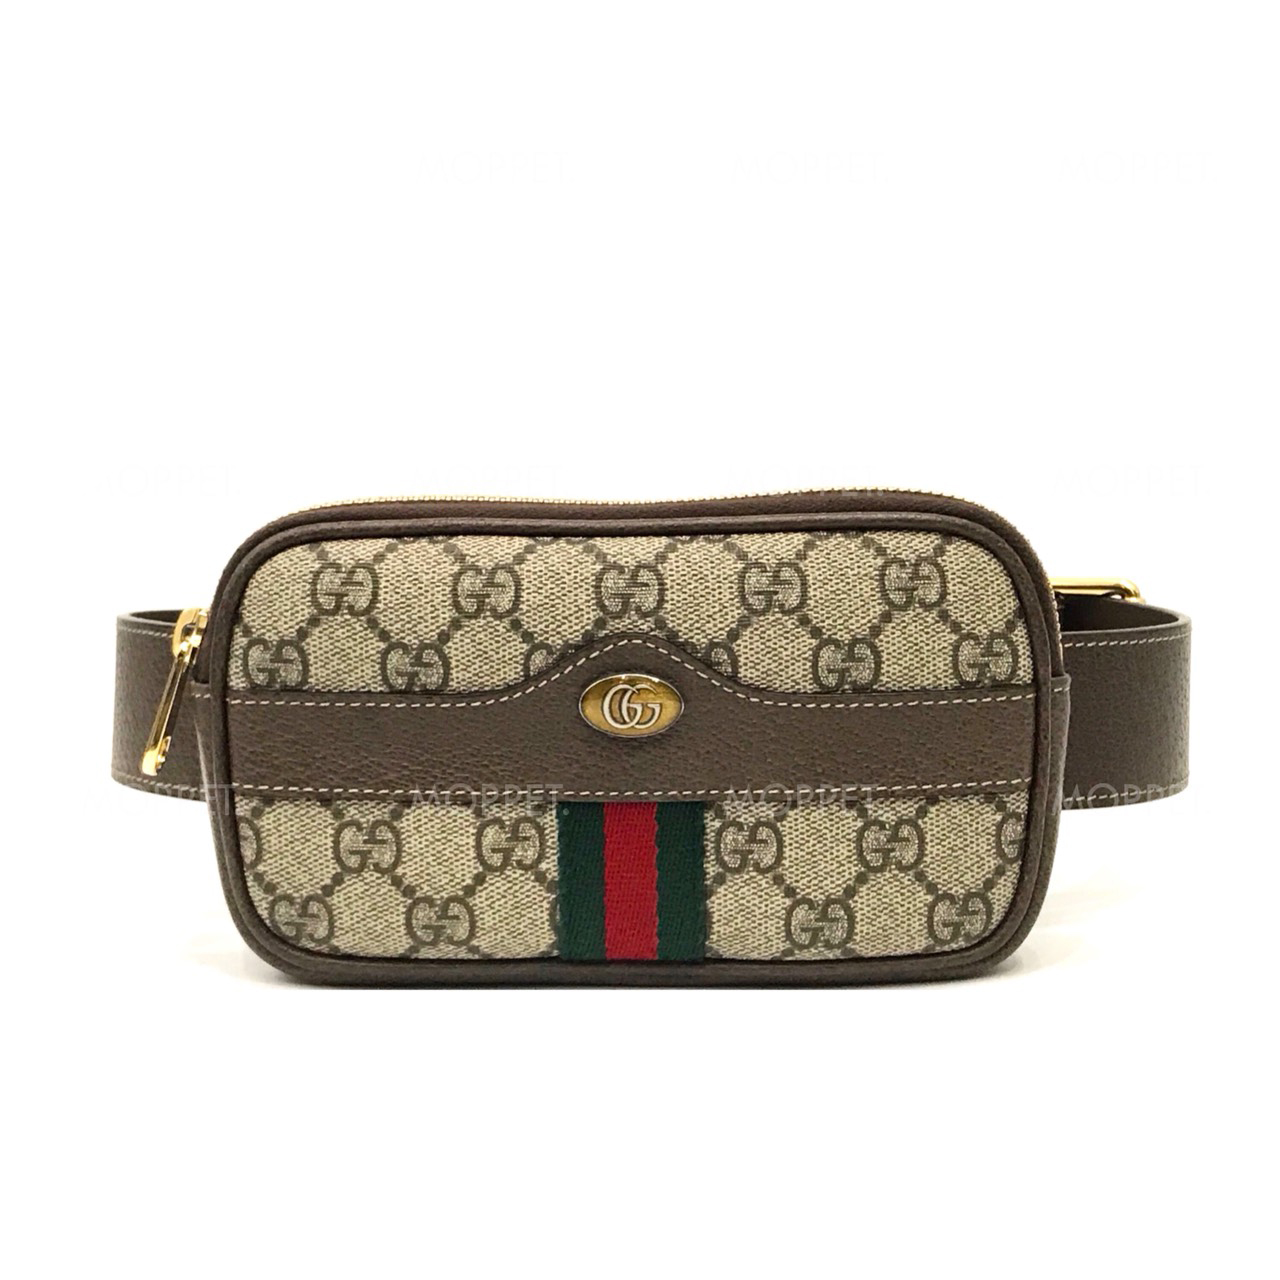 "Like New Gucci Belt Bag 75"" in Signature Canvas GHW"